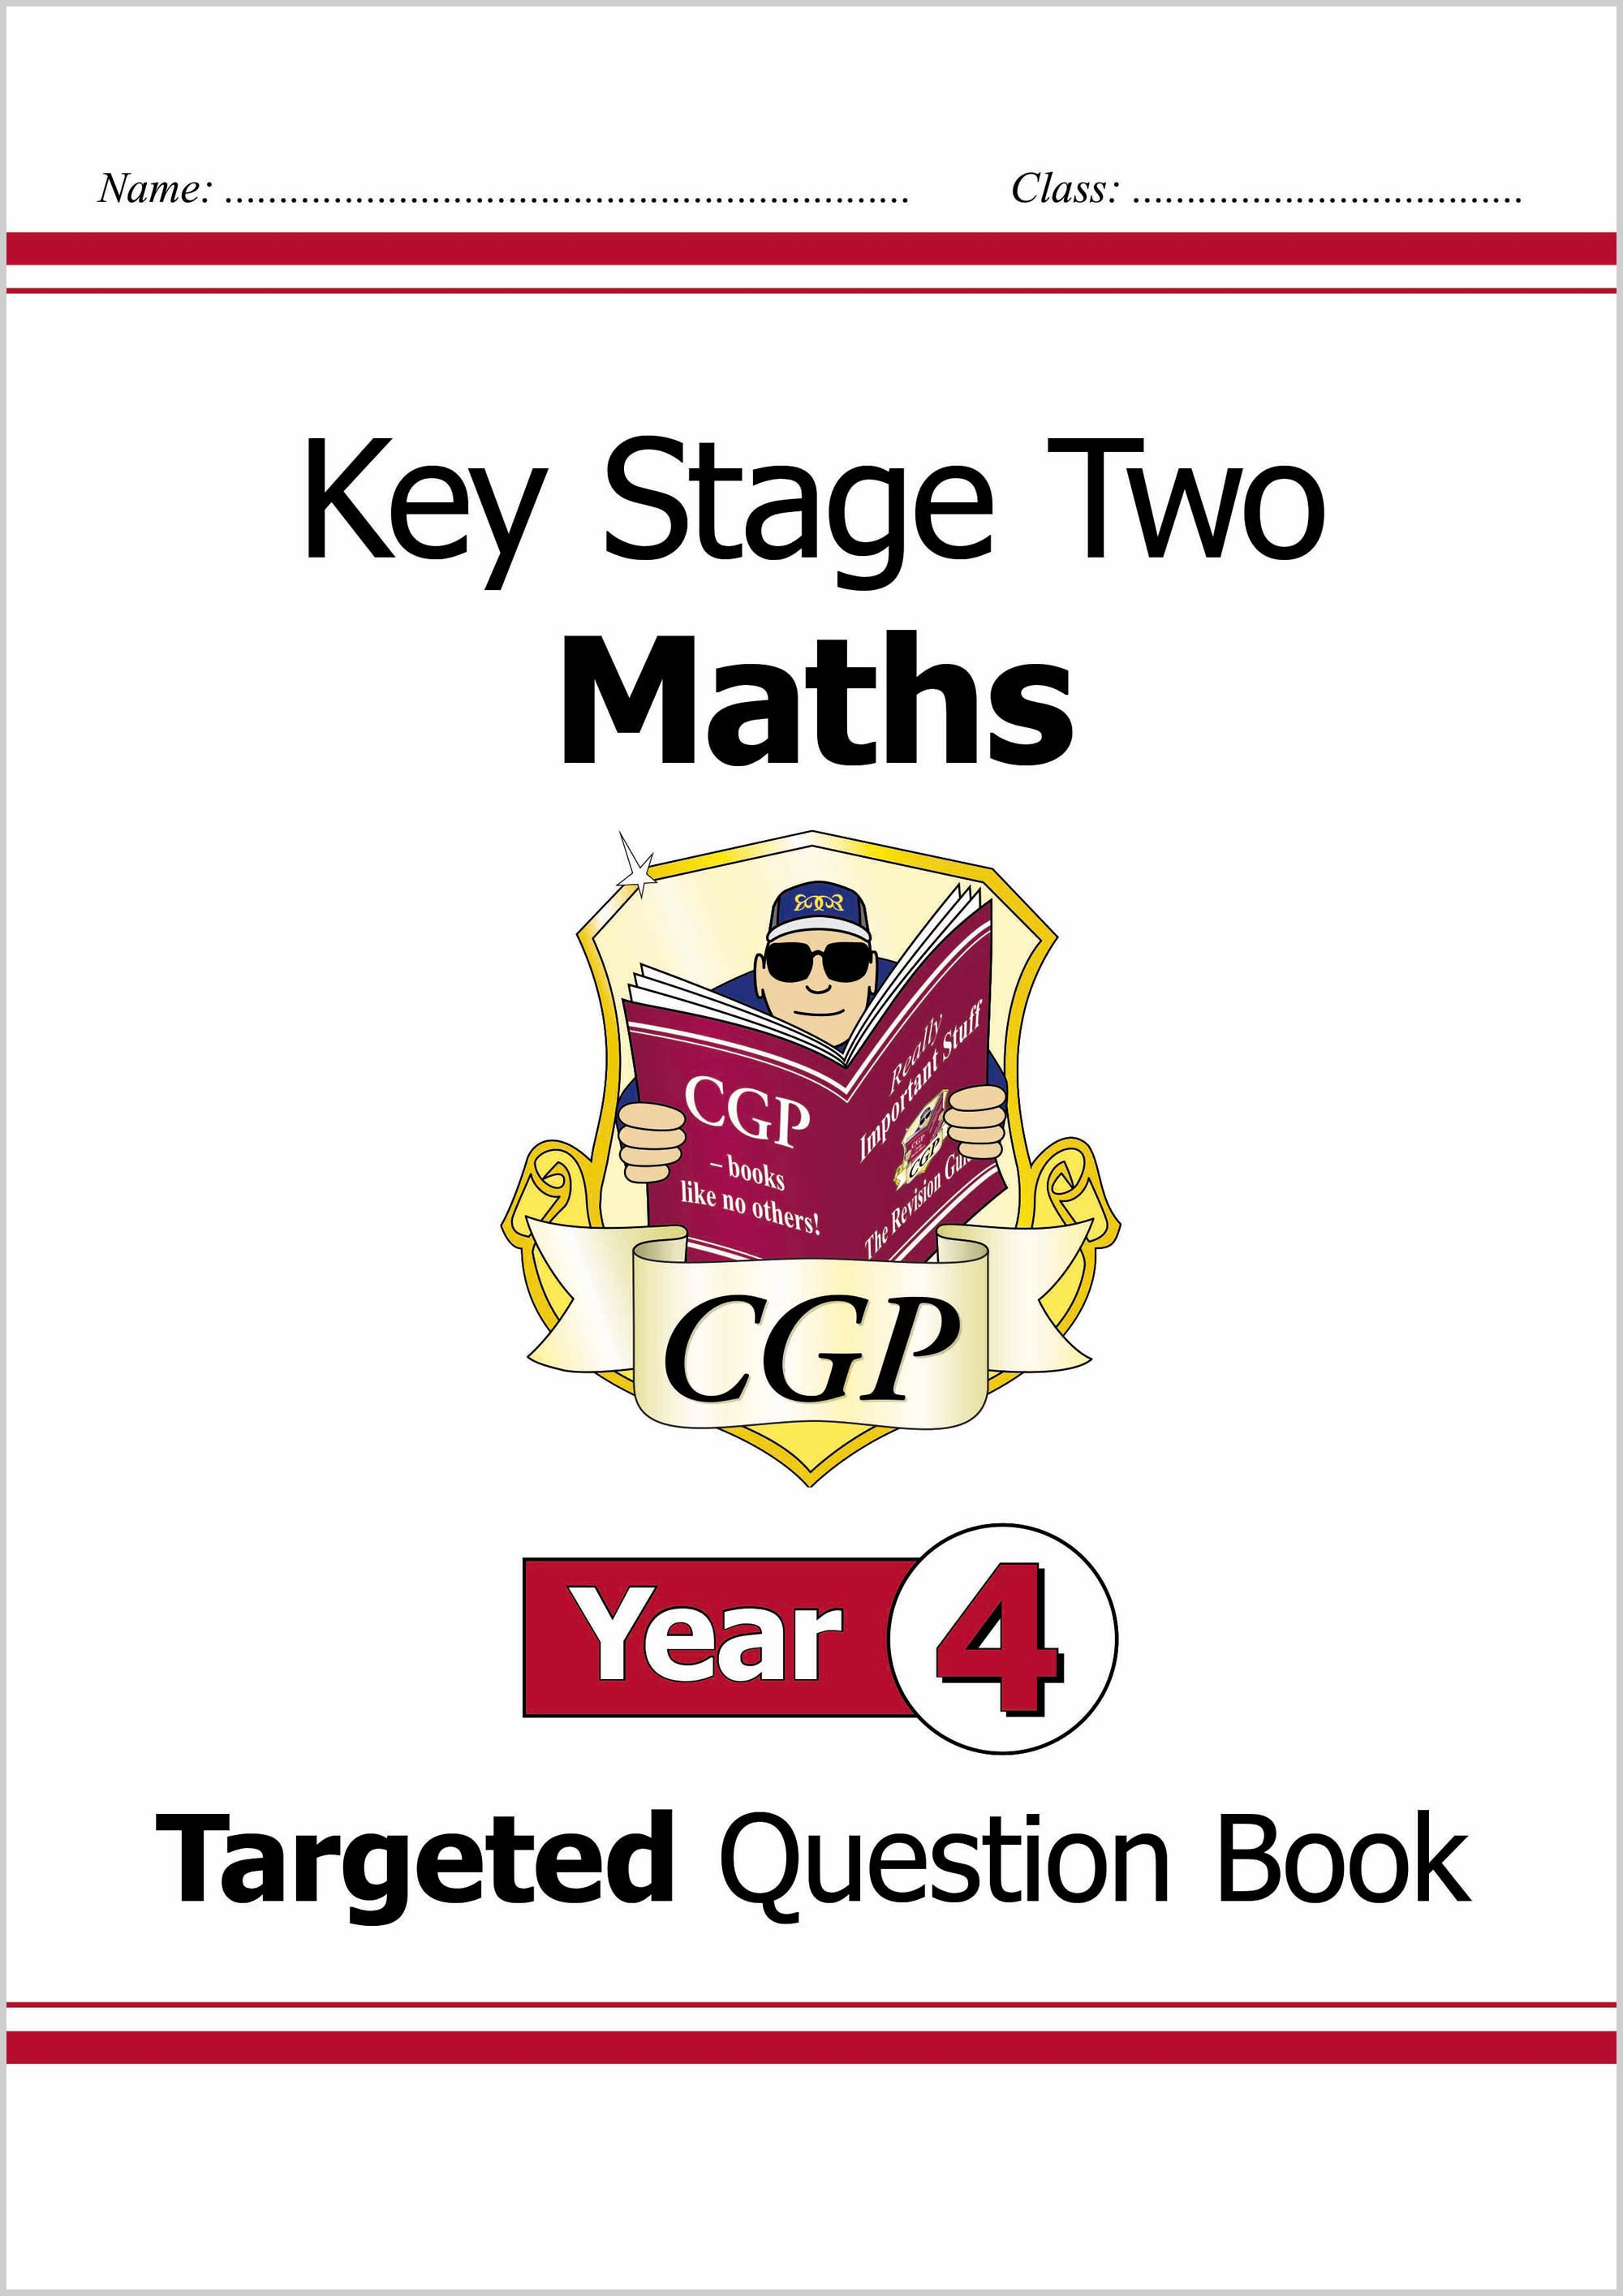 M4Q24D - KS2 Maths Targeted Question Book - Year 4 Onljne Edition